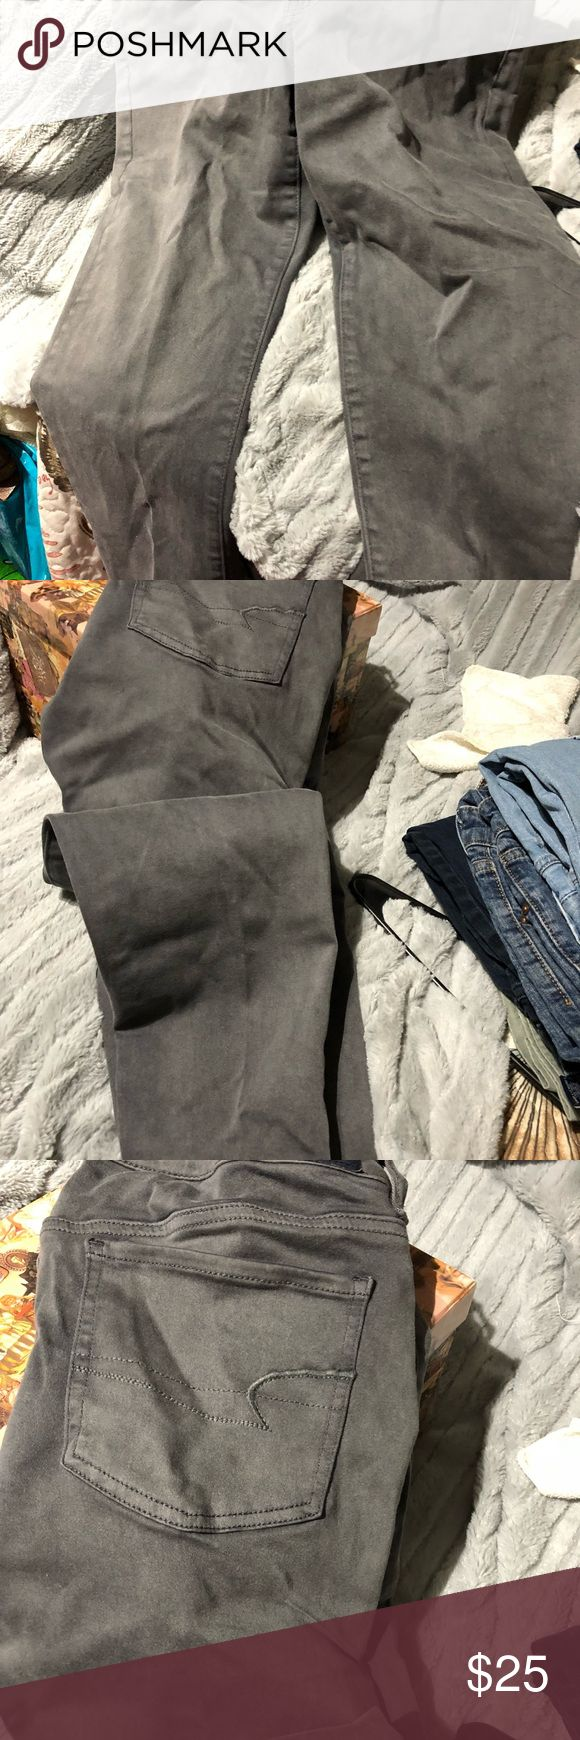 American Eagle Outfitters Very soft, grey, comfortable jeans American Eagle Outfitters Jeans Straight Leg